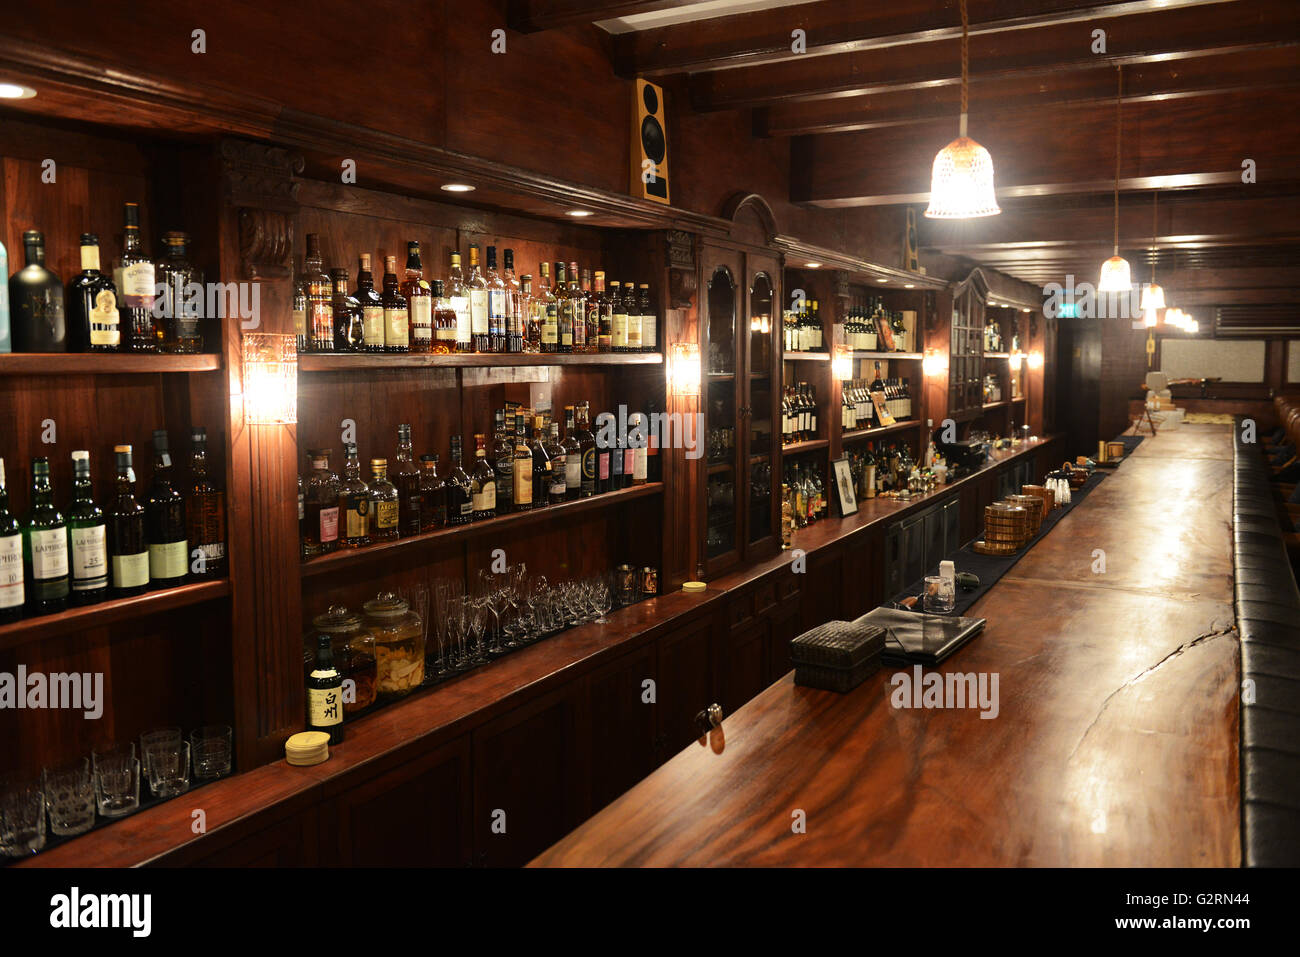 Mesmerizing Classy Bar Stock Photos  Classy Bar Stock Images  Alamy With Inspiring Dbespoke Cocktail Bar In Singapore  Stock Image With Agreeable Naples Garden Also Thatched Garden Gazebo In Addition Harrods Gardening And Flat Pack Garden Sheds As Well As Wooden Garden Furniture Sale Additionally Covent Garden To Kings Cross From Alamycom With   Inspiring Classy Bar Stock Photos  Classy Bar Stock Images  Alamy With Agreeable Dbespoke Cocktail Bar In Singapore  Stock Image And Mesmerizing Naples Garden Also Thatched Garden Gazebo In Addition Harrods Gardening From Alamycom